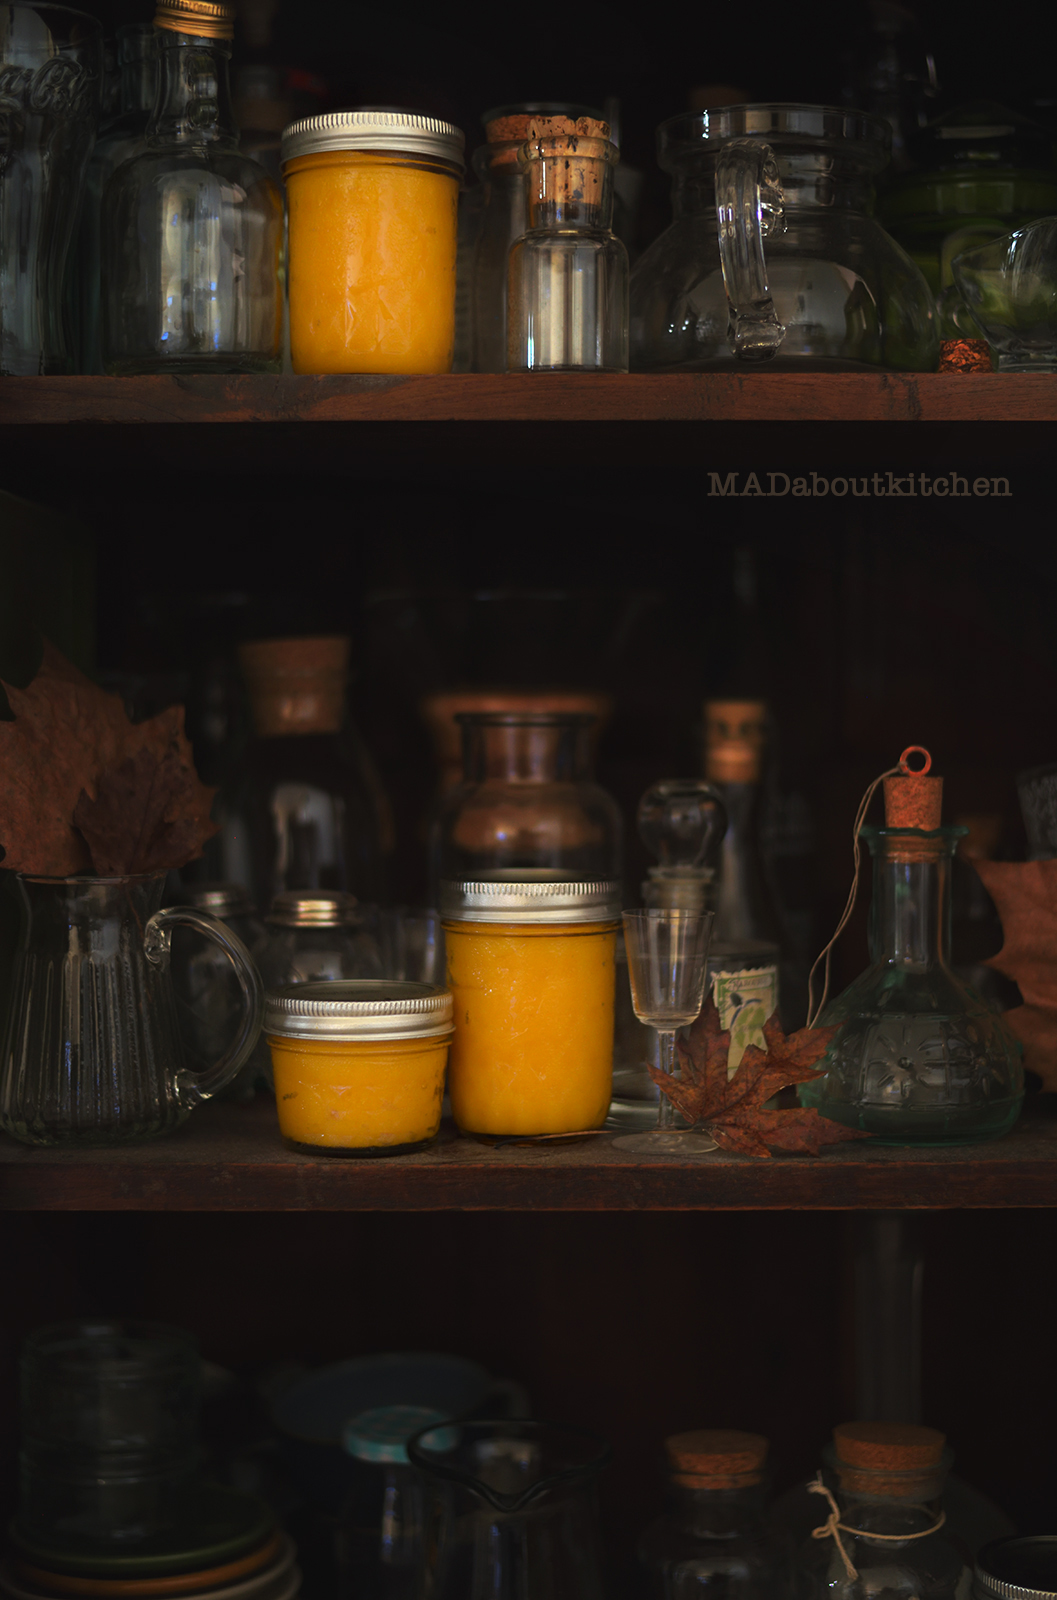 Here is how you can make Homemade Pumpkin Puree from scratch and store it to use in all your favourite autumn recipes. It makes your life so much easier.